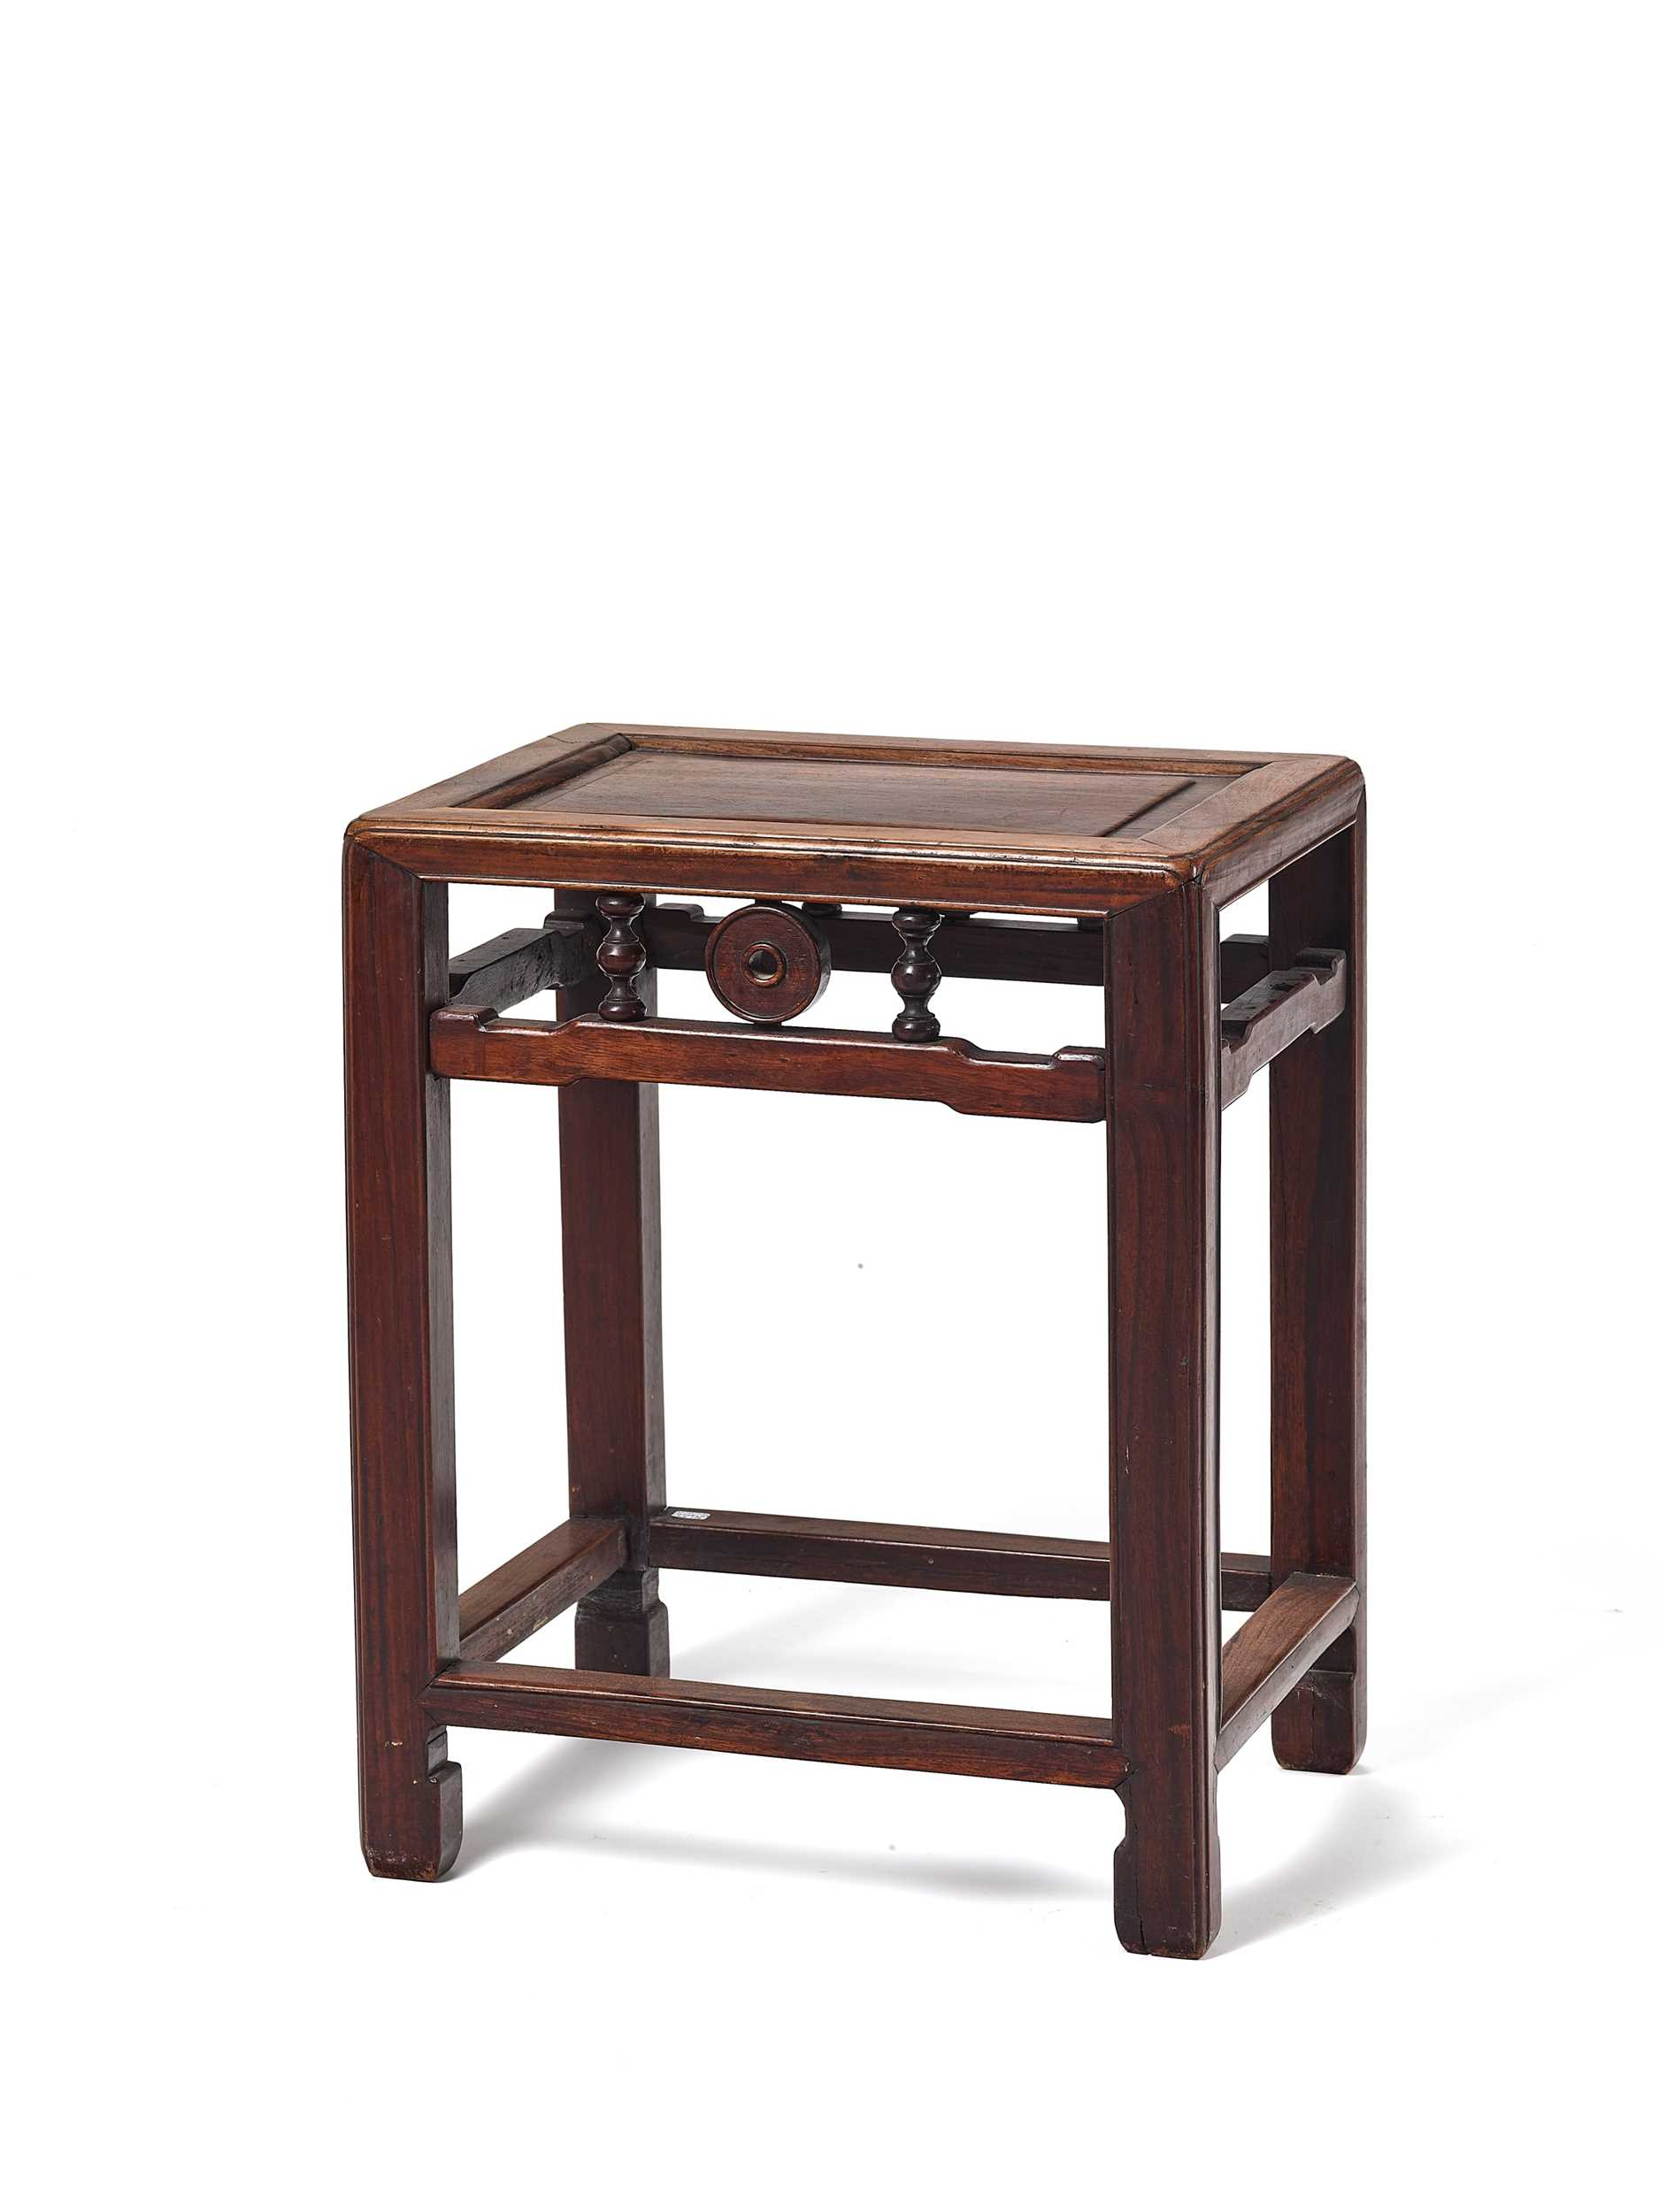 Lot 149 - A CHINESE HARDWOOD SIDE TABLE, LATE QING DYNASTY